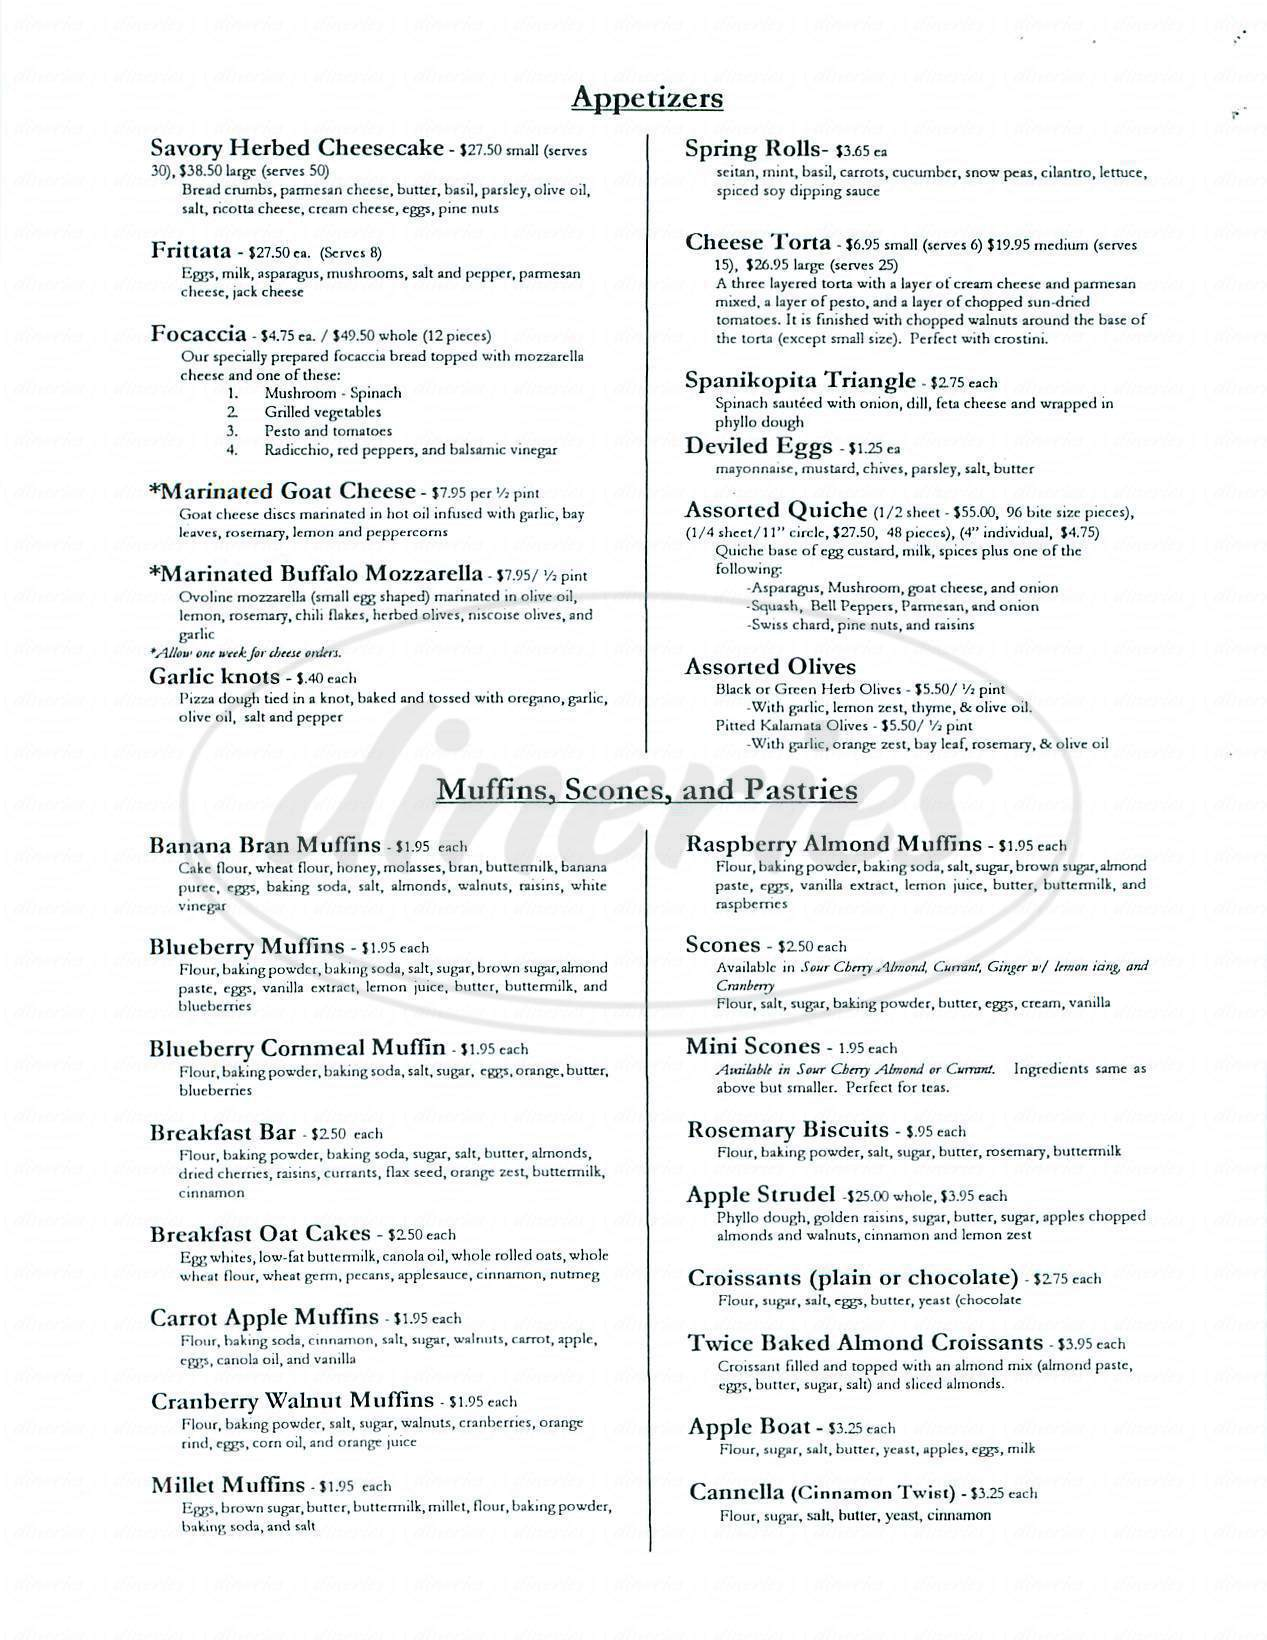 menu for Zinc Café & Market